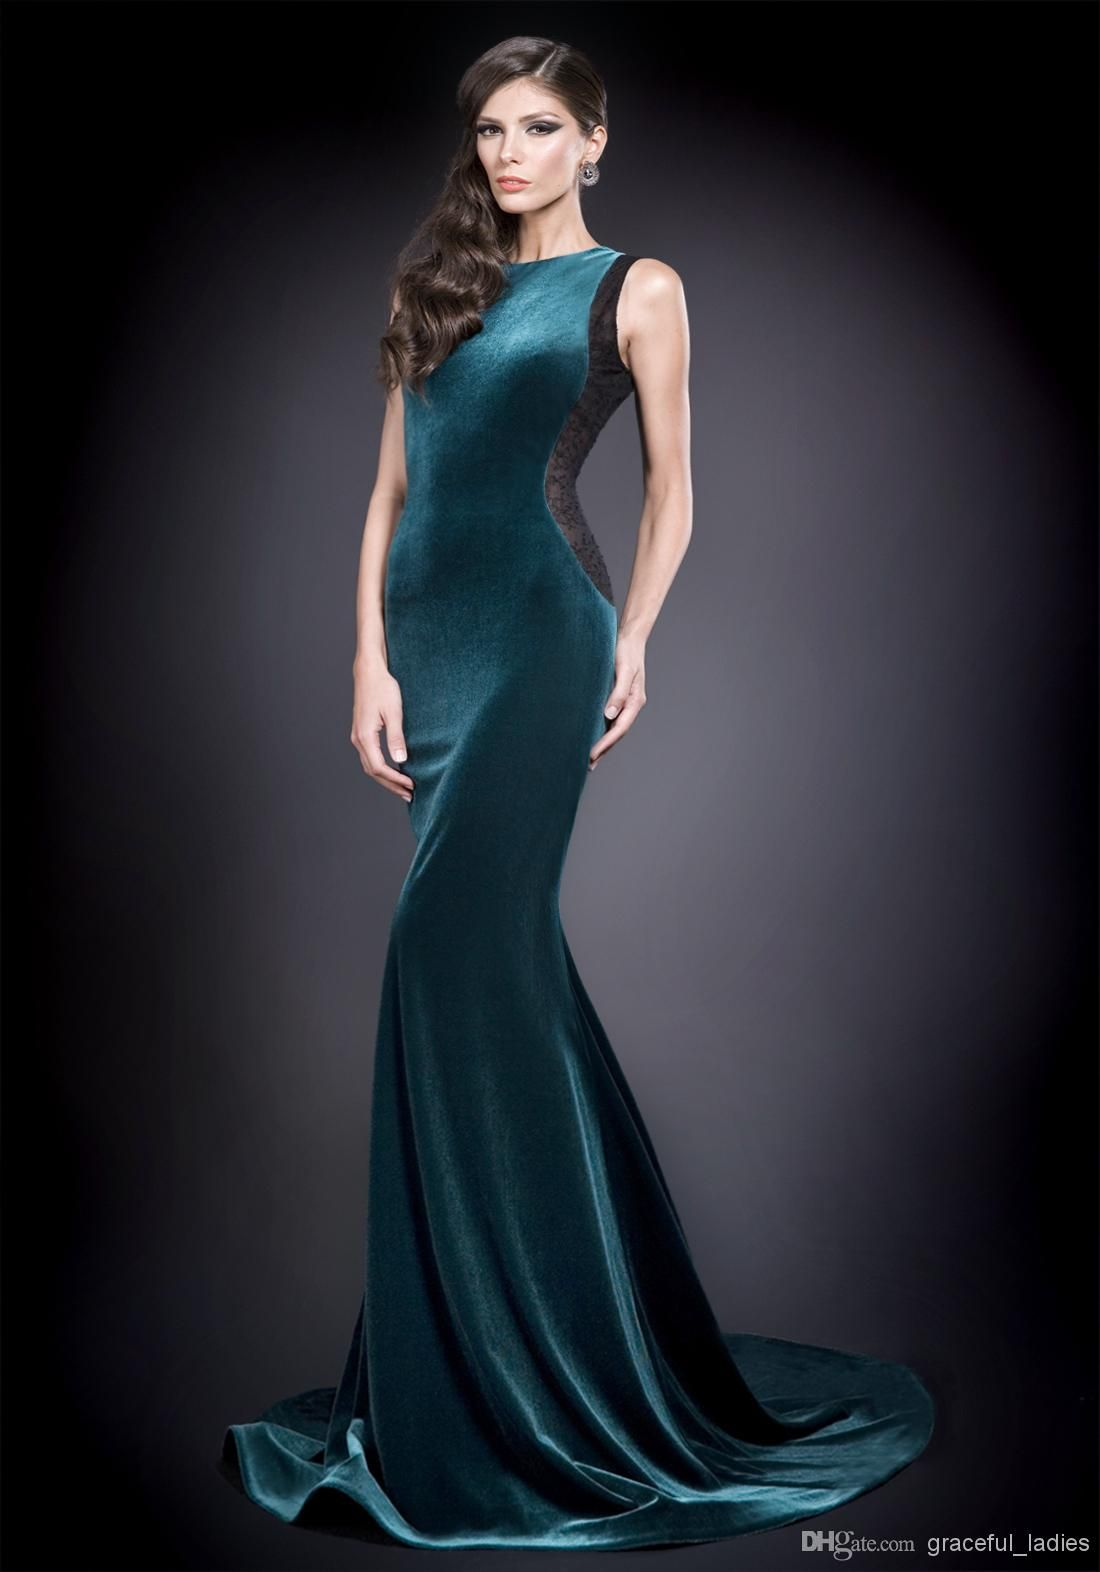 velvet gown - Yahoo Image Search Results | My Dream Closet ...